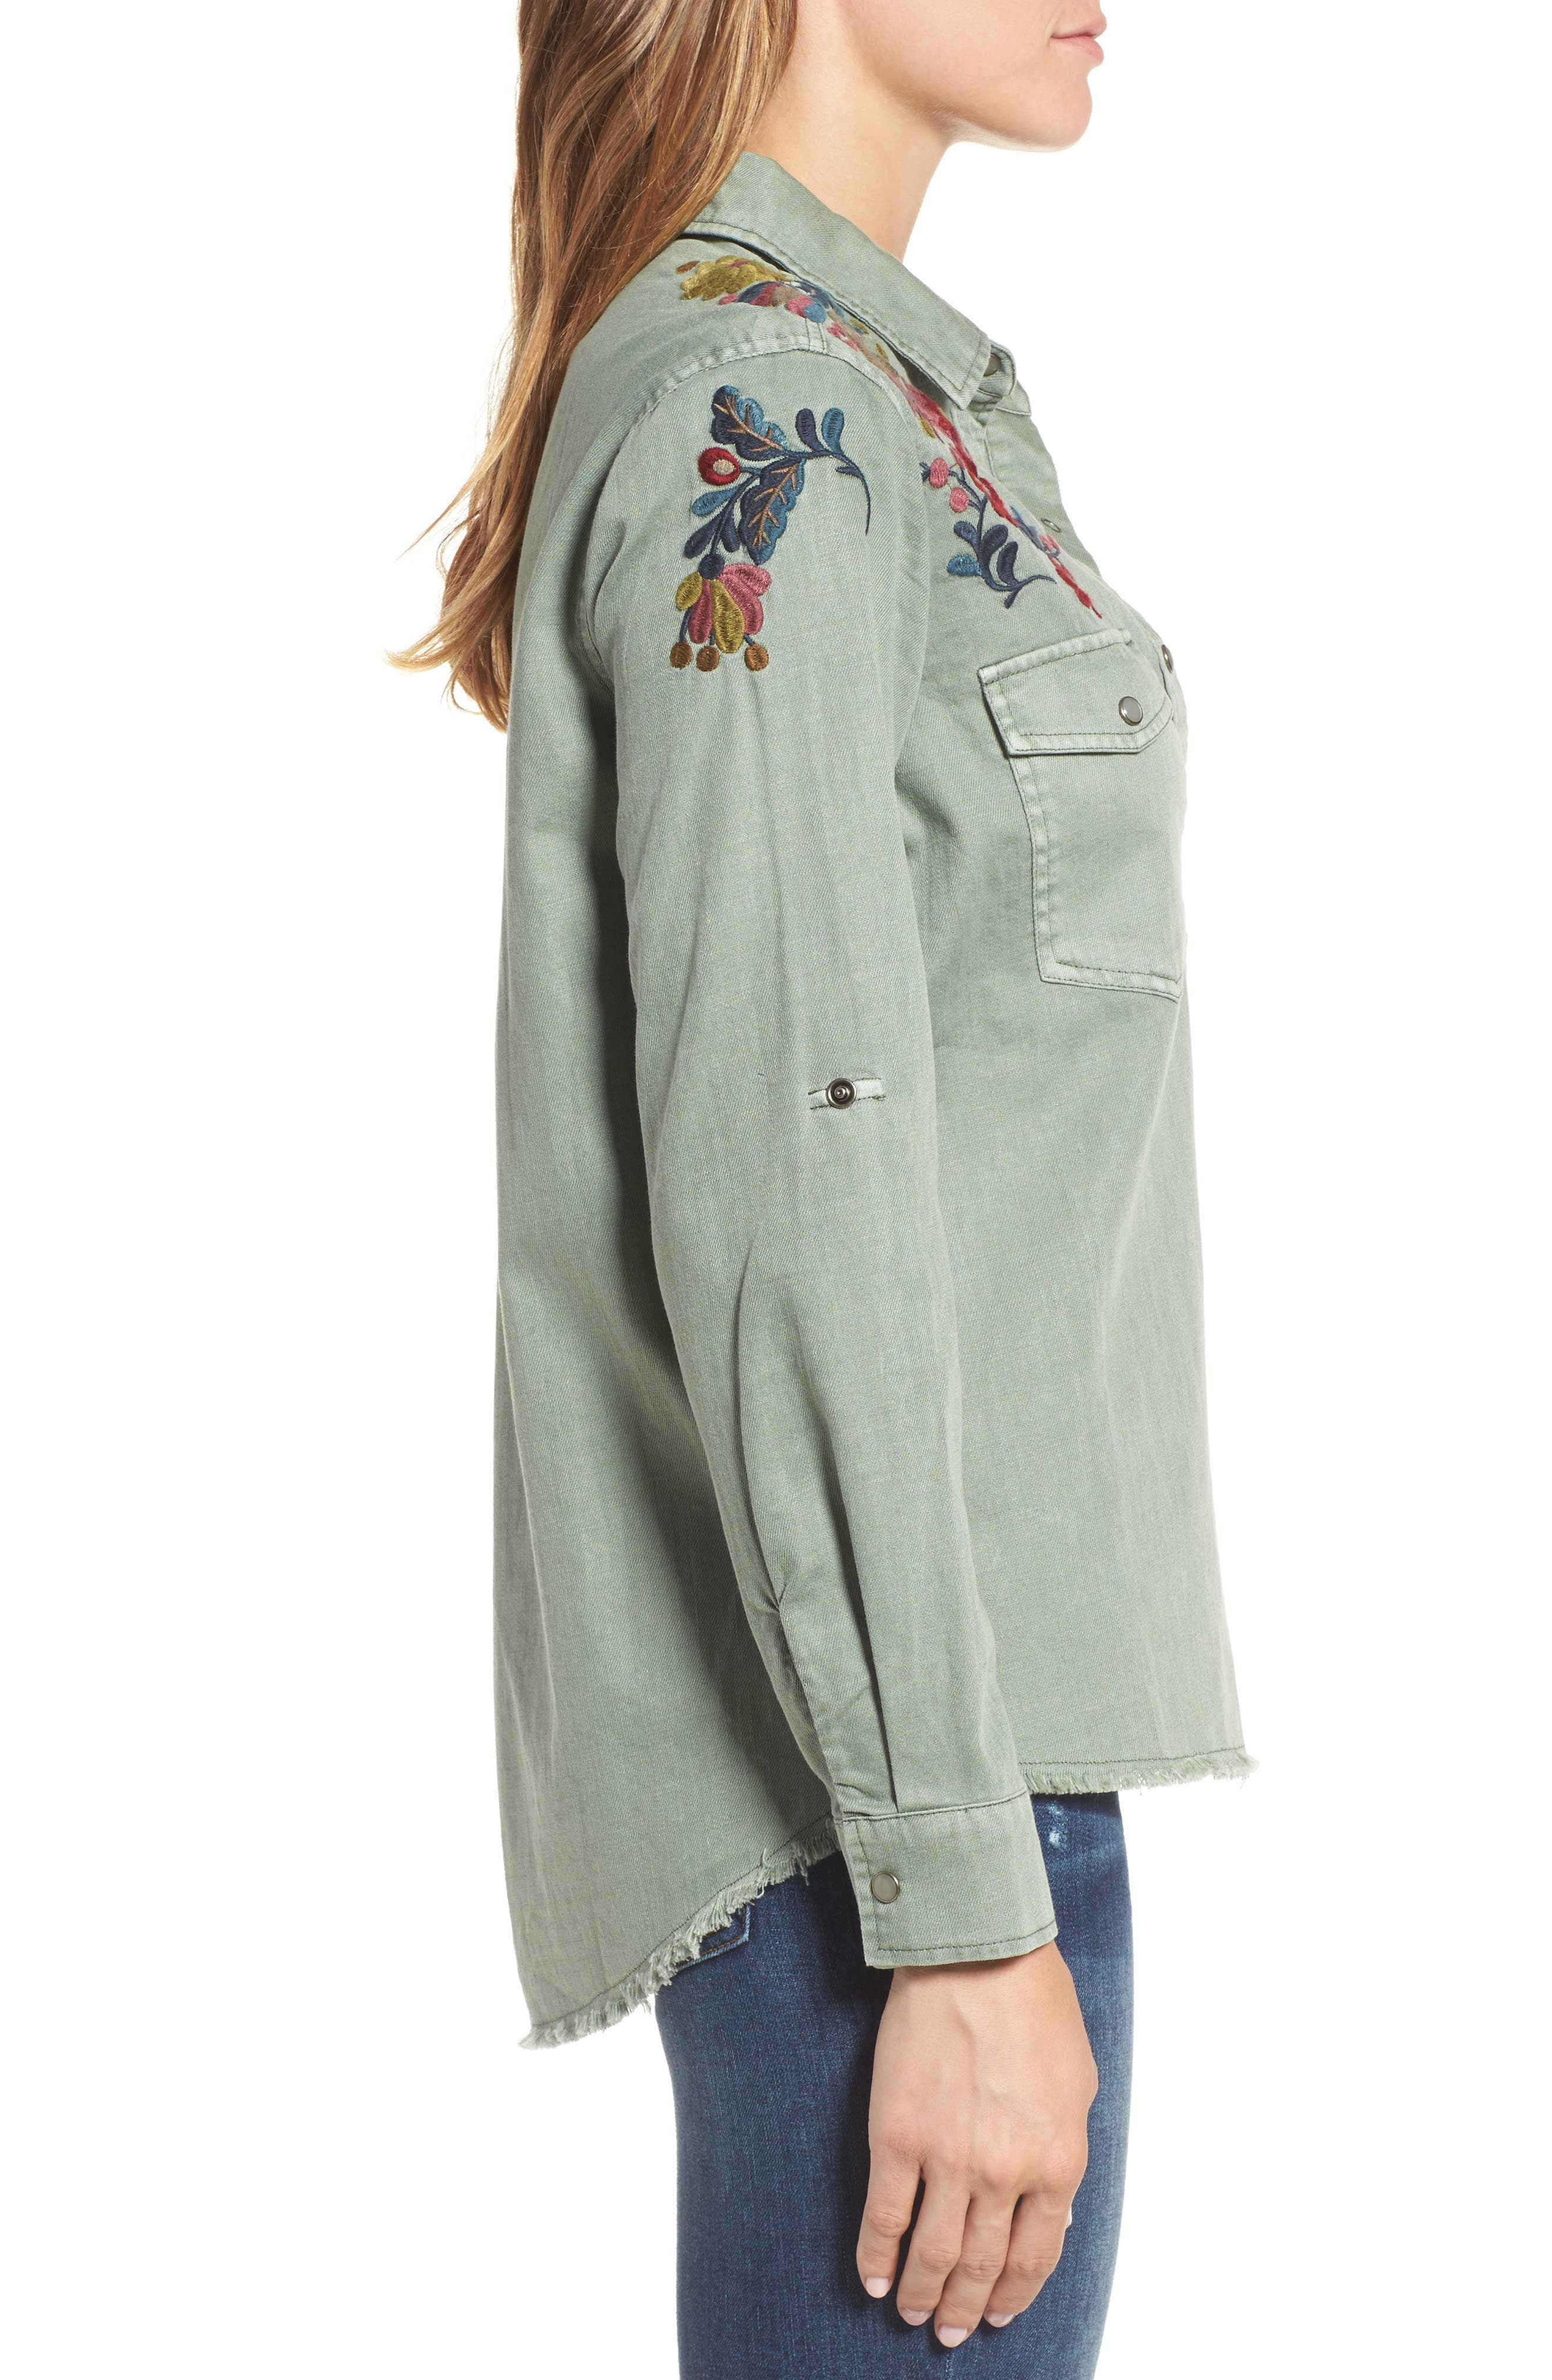 Roll Sleeve Embroidered Shirt,                             Alternate thumbnail 3, color,                             301